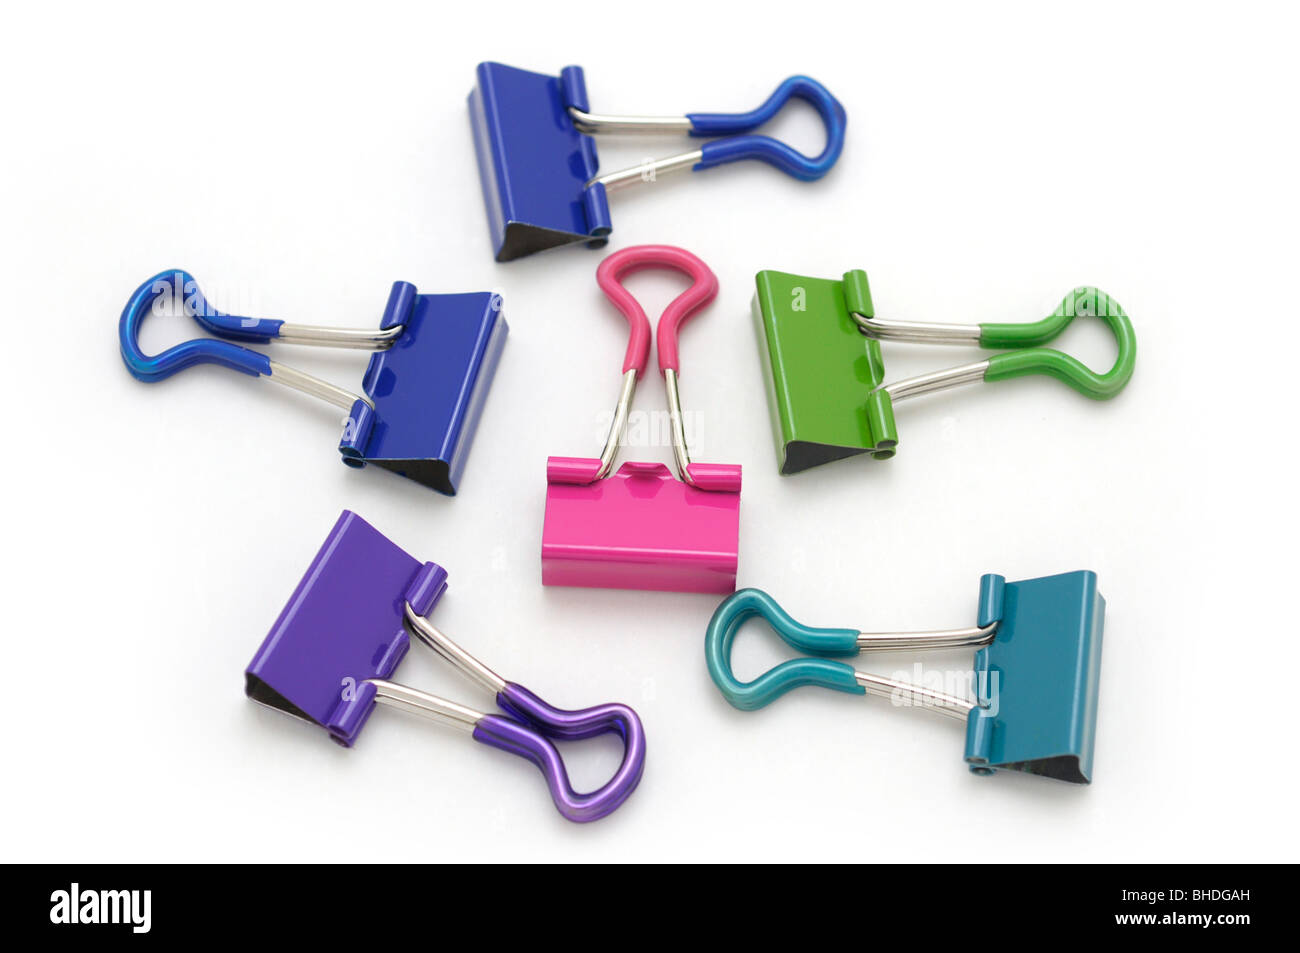 Binder Clips with Rubberized Grips - Stock Image